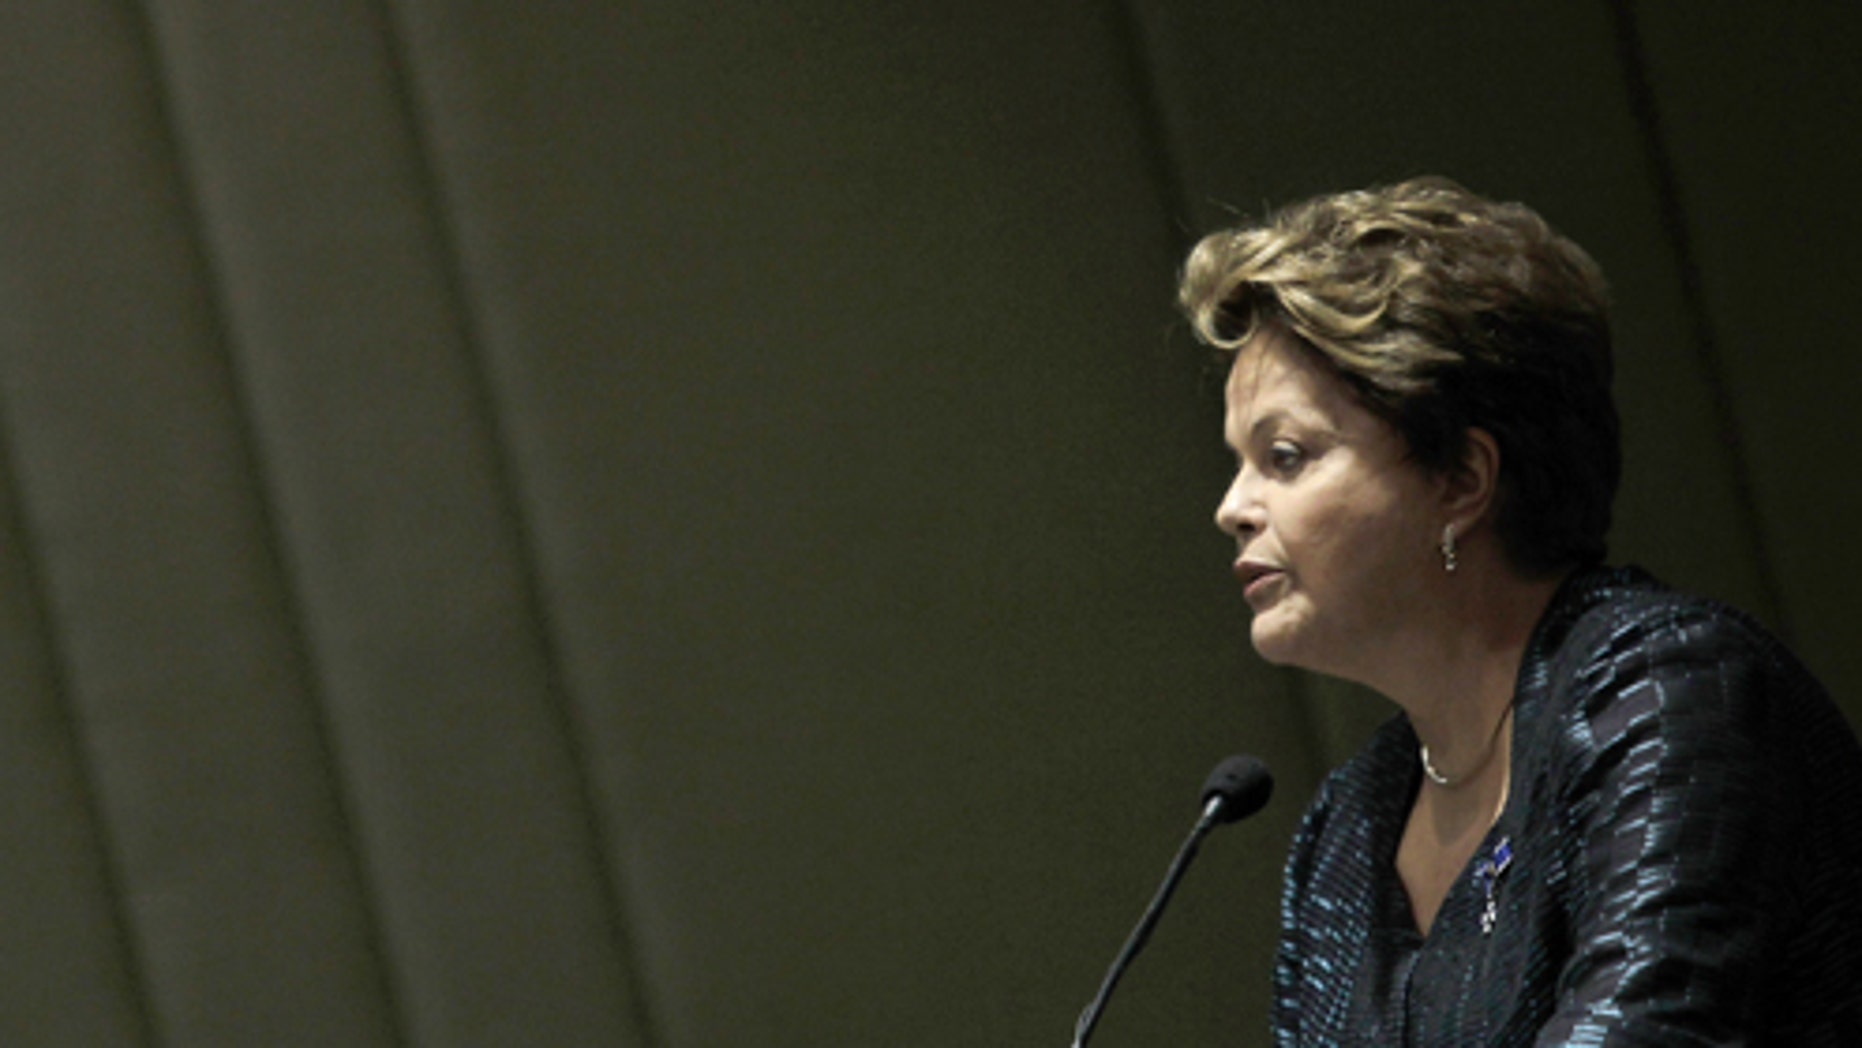 Brazil's President Dilma Rousseff, speaks at a graduation ceremony for graduates of the  Rio Branco Institute, at the Itamaraty Palace in Brasilia, Brazil, Monday, June 17, 2013. Brazilian protesters angered by a hike in bus and subway fares are promising to hold their biggest demonstration yet. However, police say they will take a less confrontational approach and will not use rubber bullets during Monday's planned protest. Authorities say they want to avoid a repeat of last week's bloody clashes in Sao Paulo. About 100 demonstrators were hurt during that violent protest last Thursday. (AP Photo/Eraldo Peres)